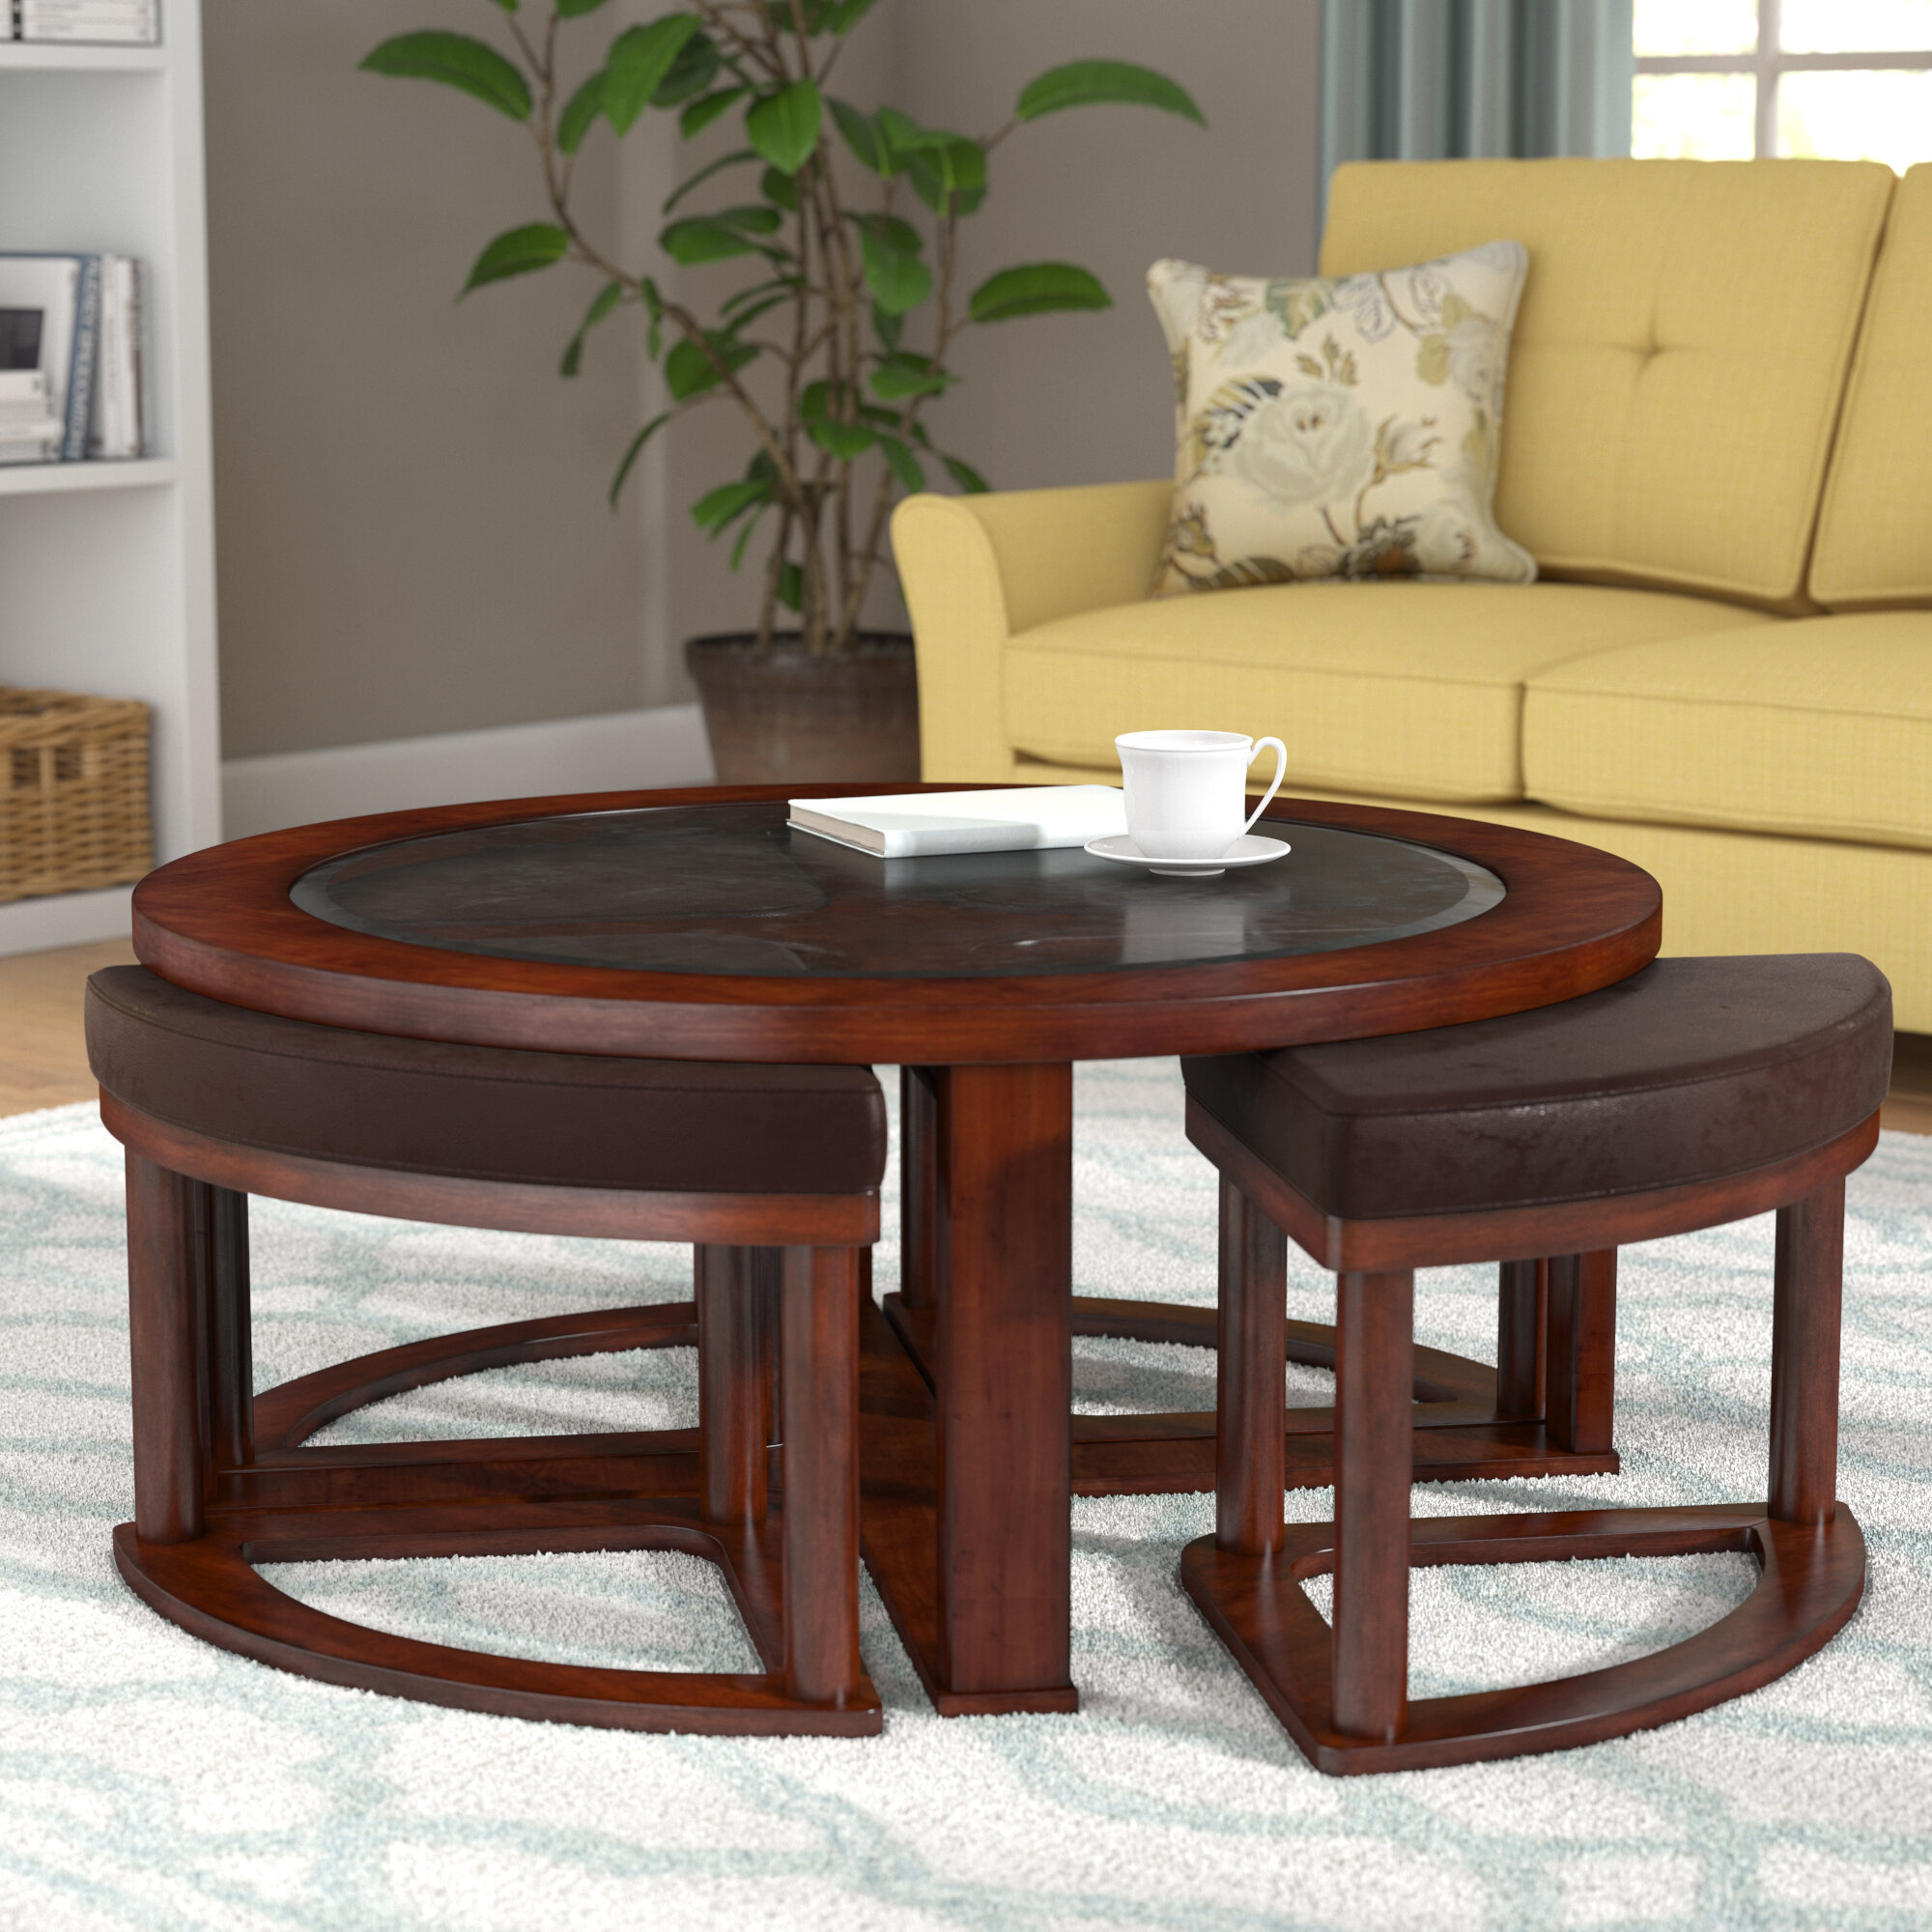 Darby Home Co Eastin Coffee Table With Nested Stools Reviews Wayfair - Round cocktail table with stools